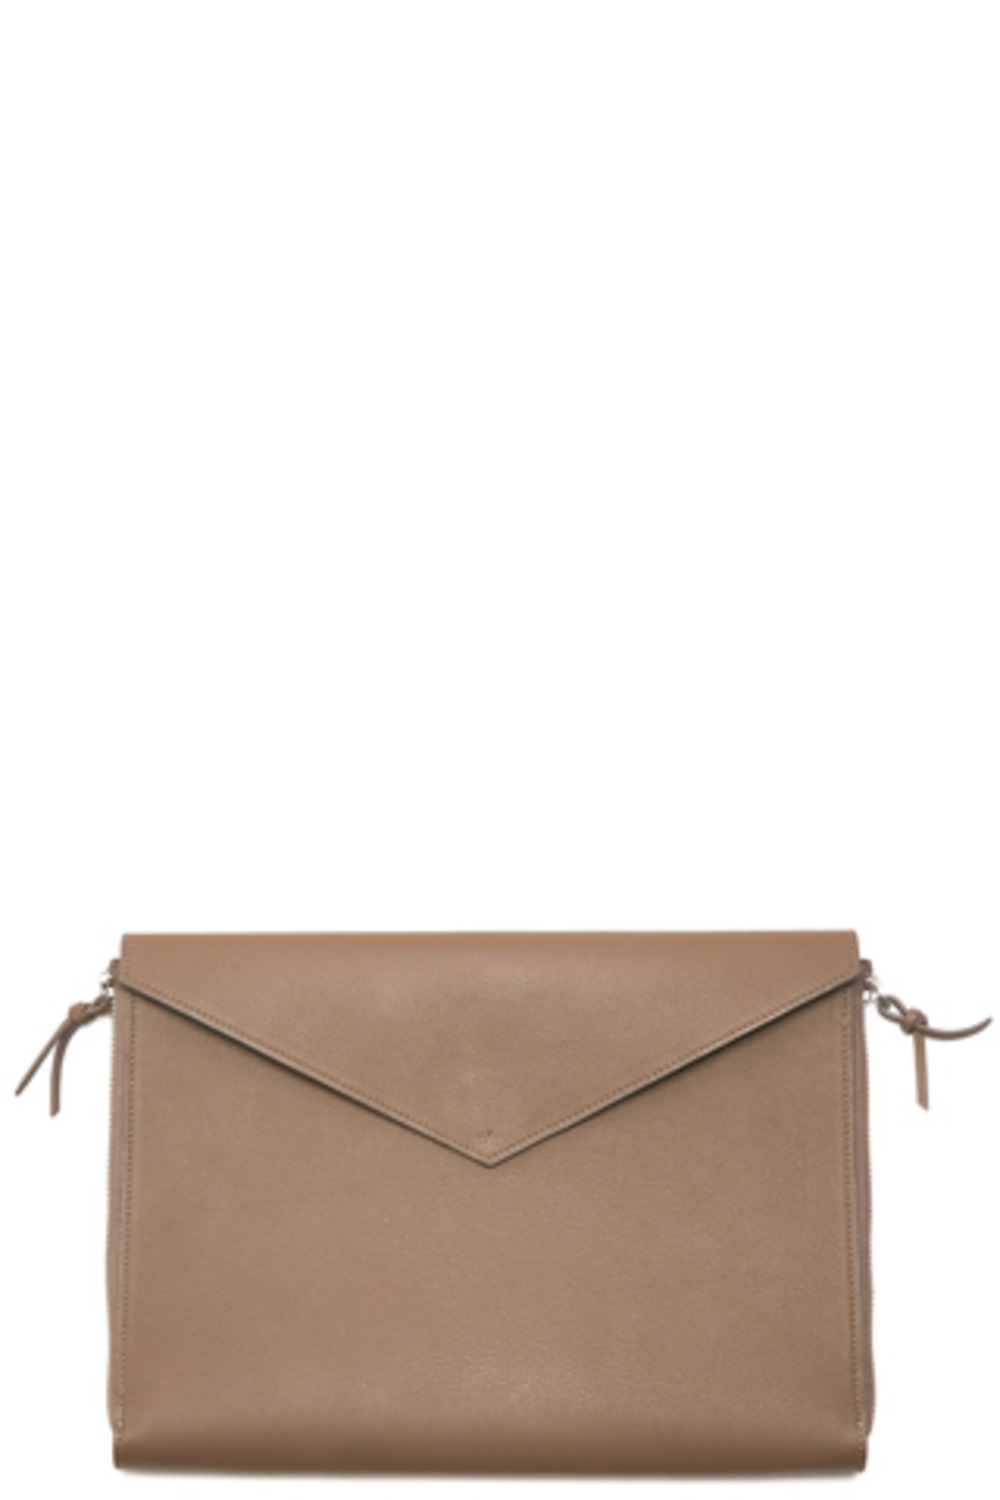 GreyBrown Two Side Zipper Clutch